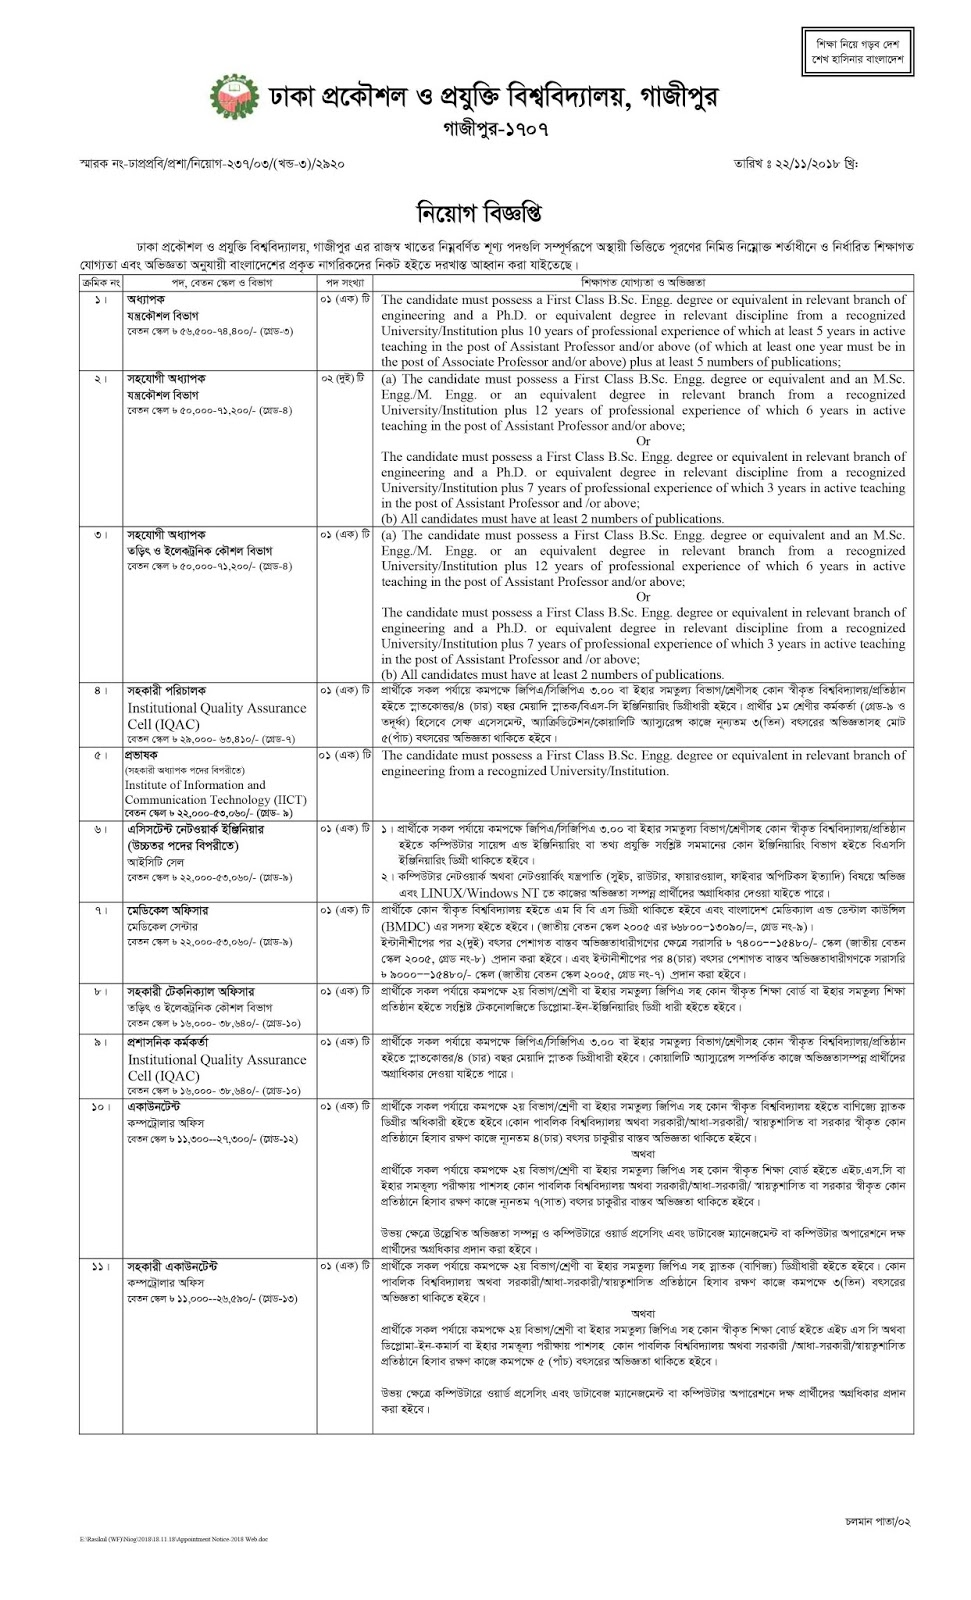 Dhaka University of Engineering & Technology (DUET) Professor, Lecturer, Officer and Technician Recruitment Circular 2018